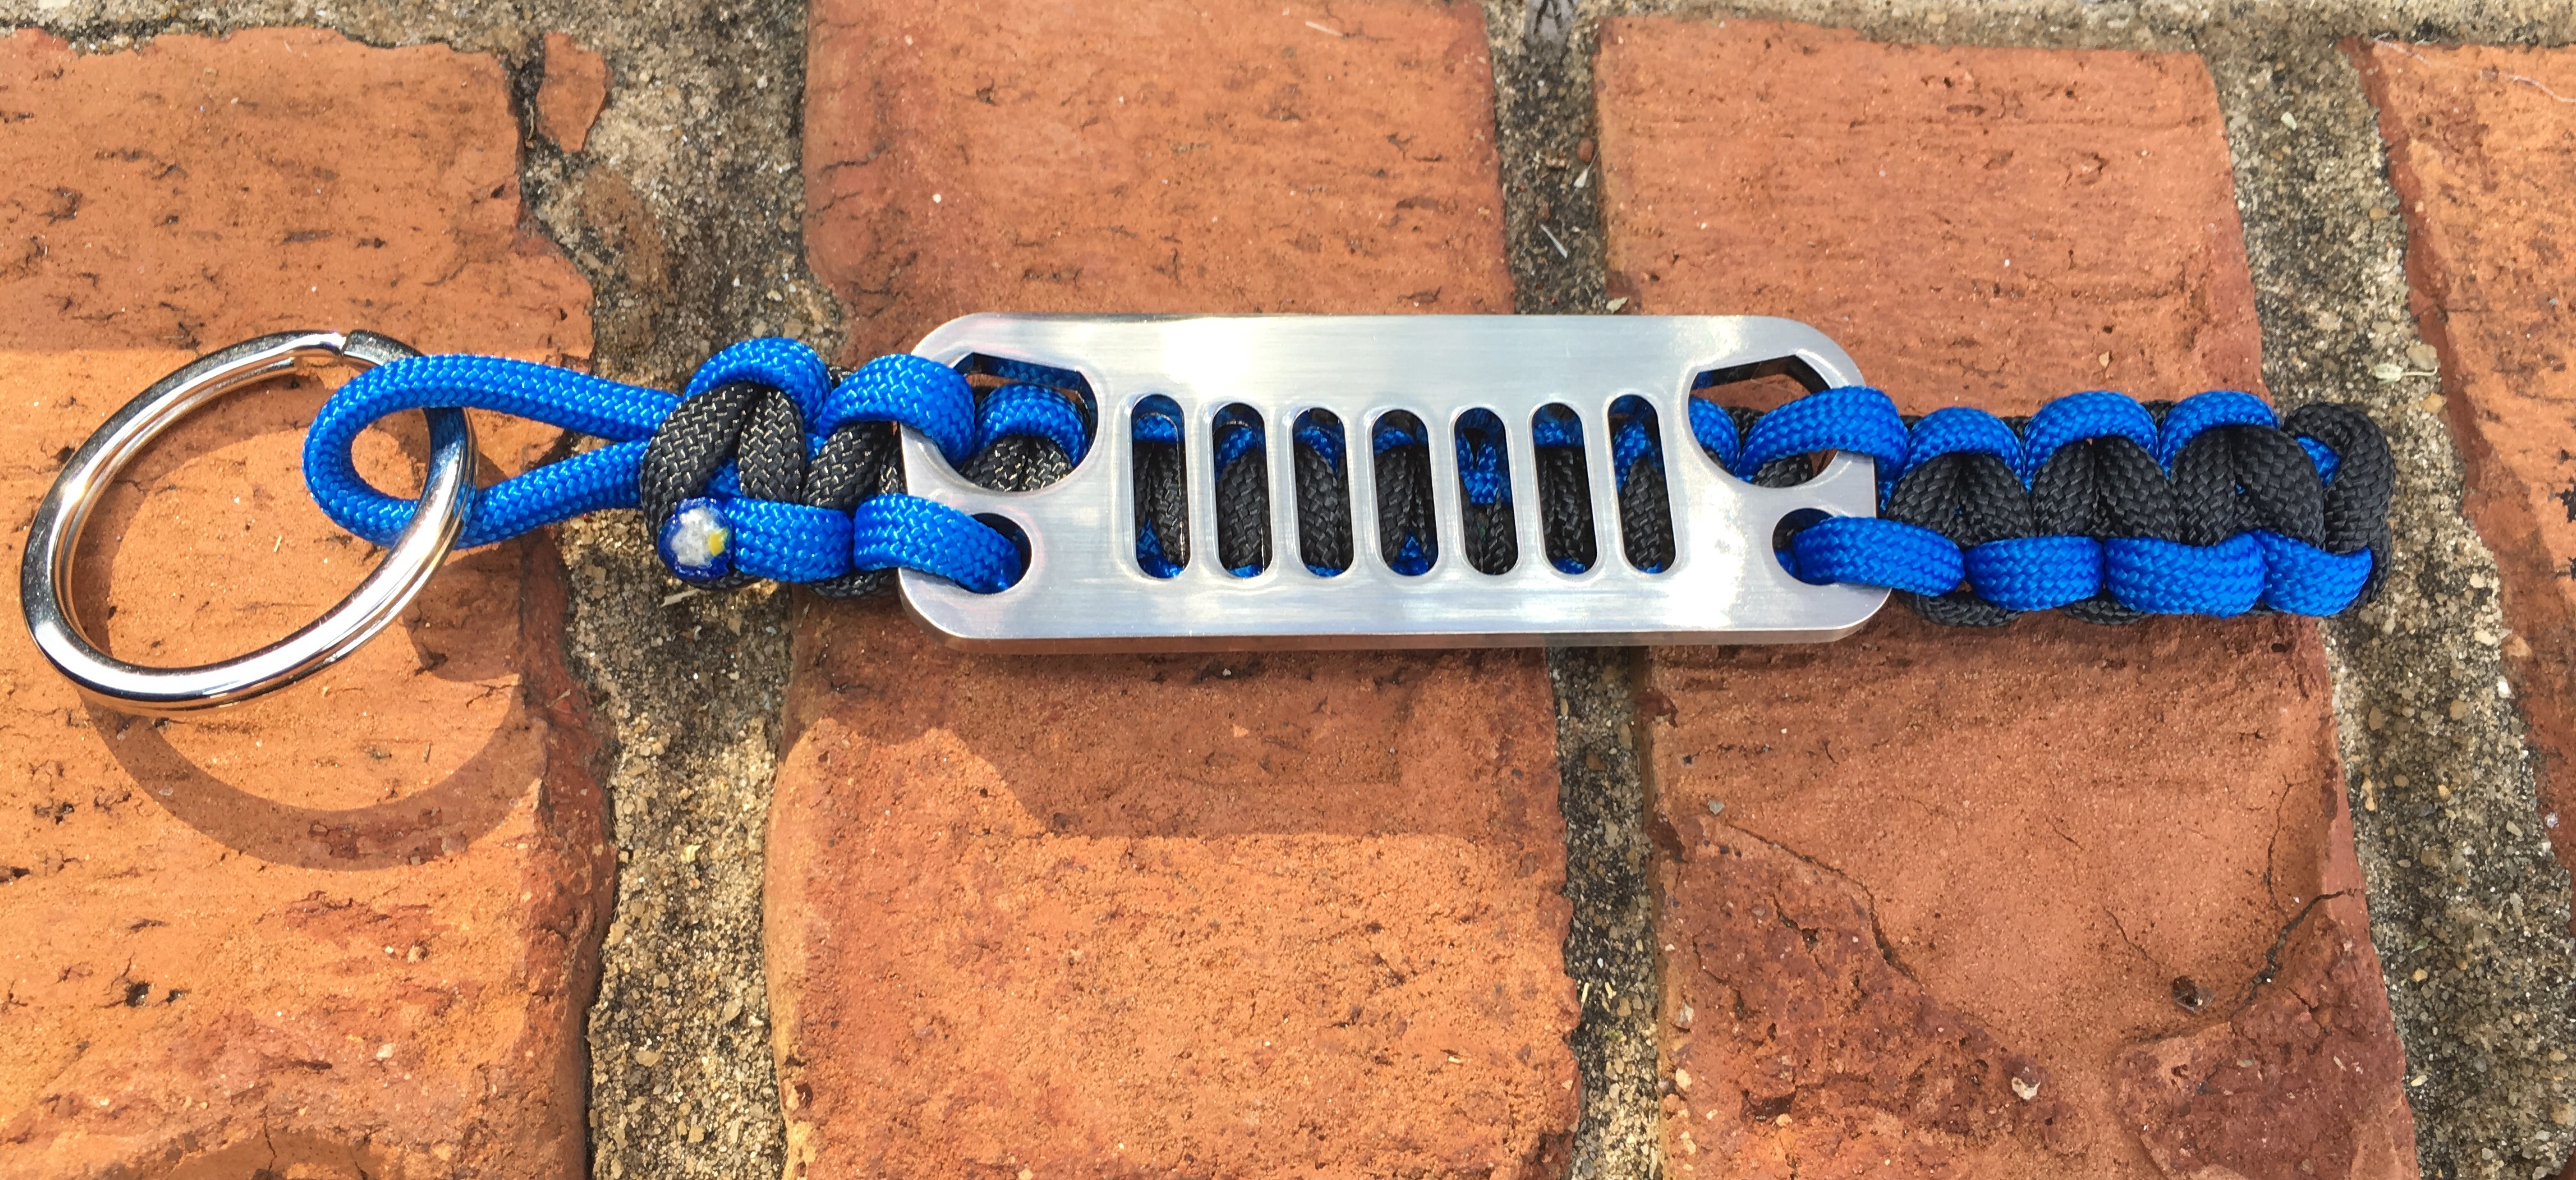 Jeep Grille Paracord Keychain in Blue and Black